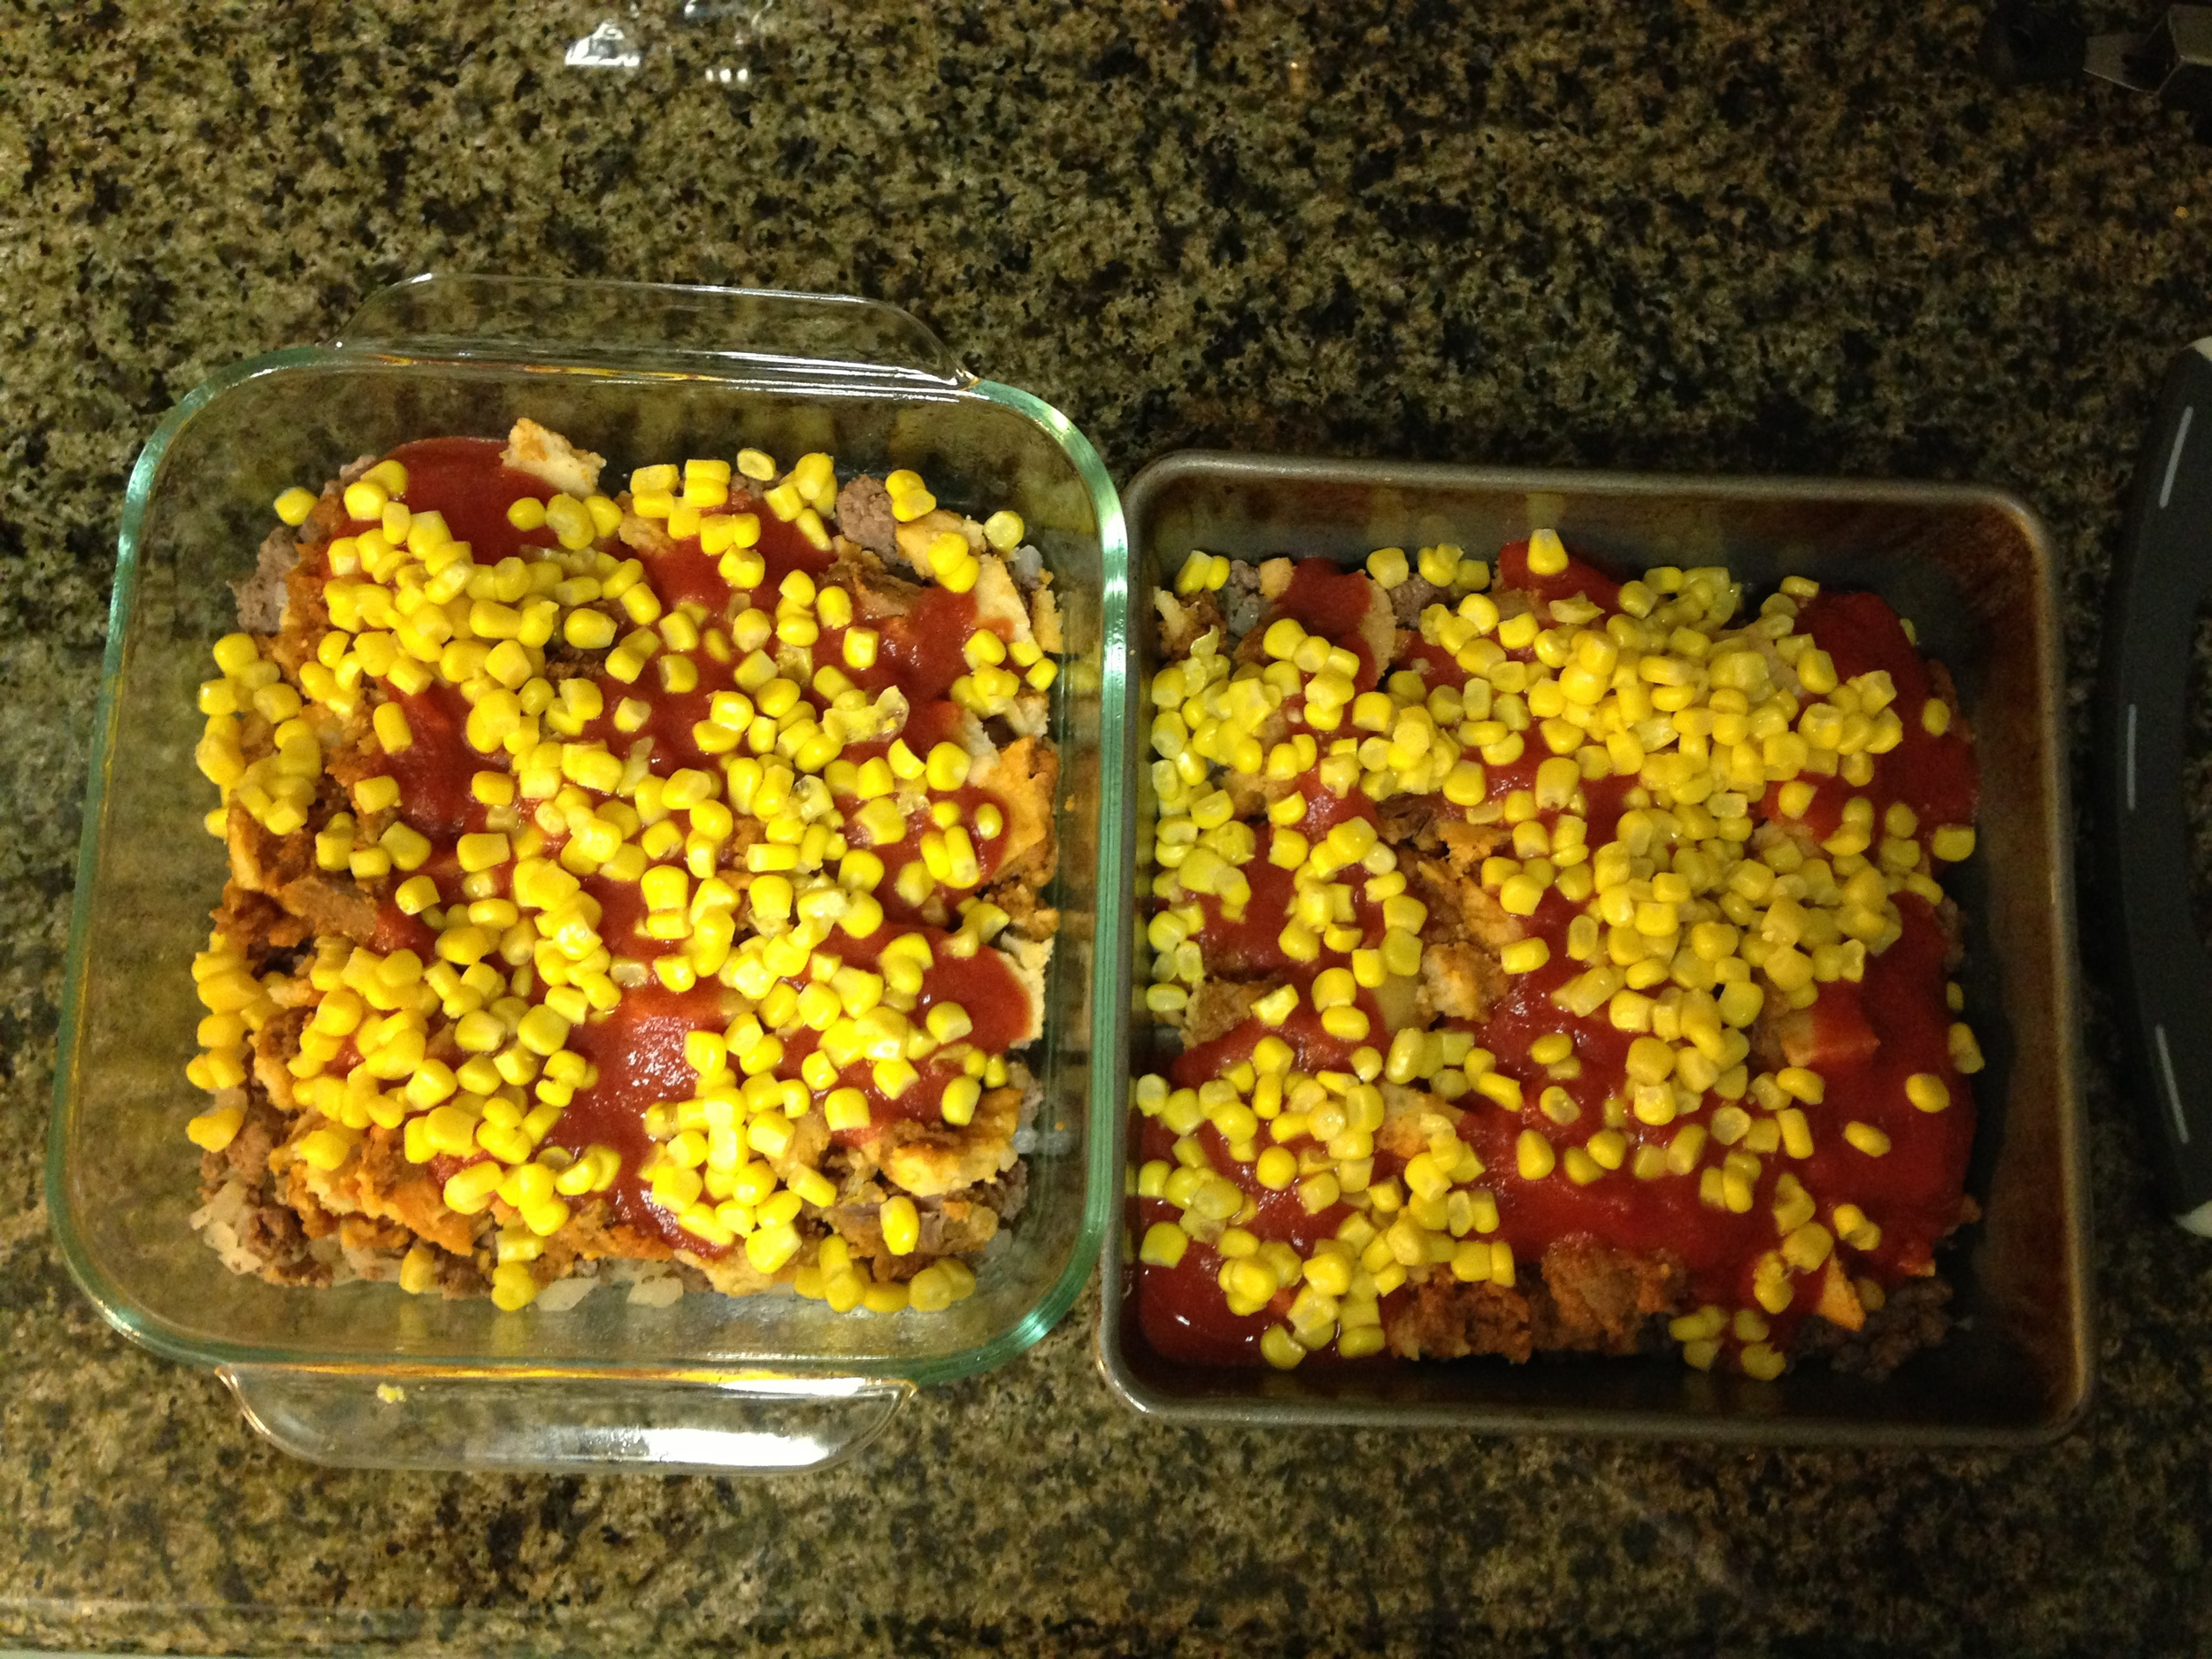 Over the tamales went some of the tomato sauce and corn kernels.